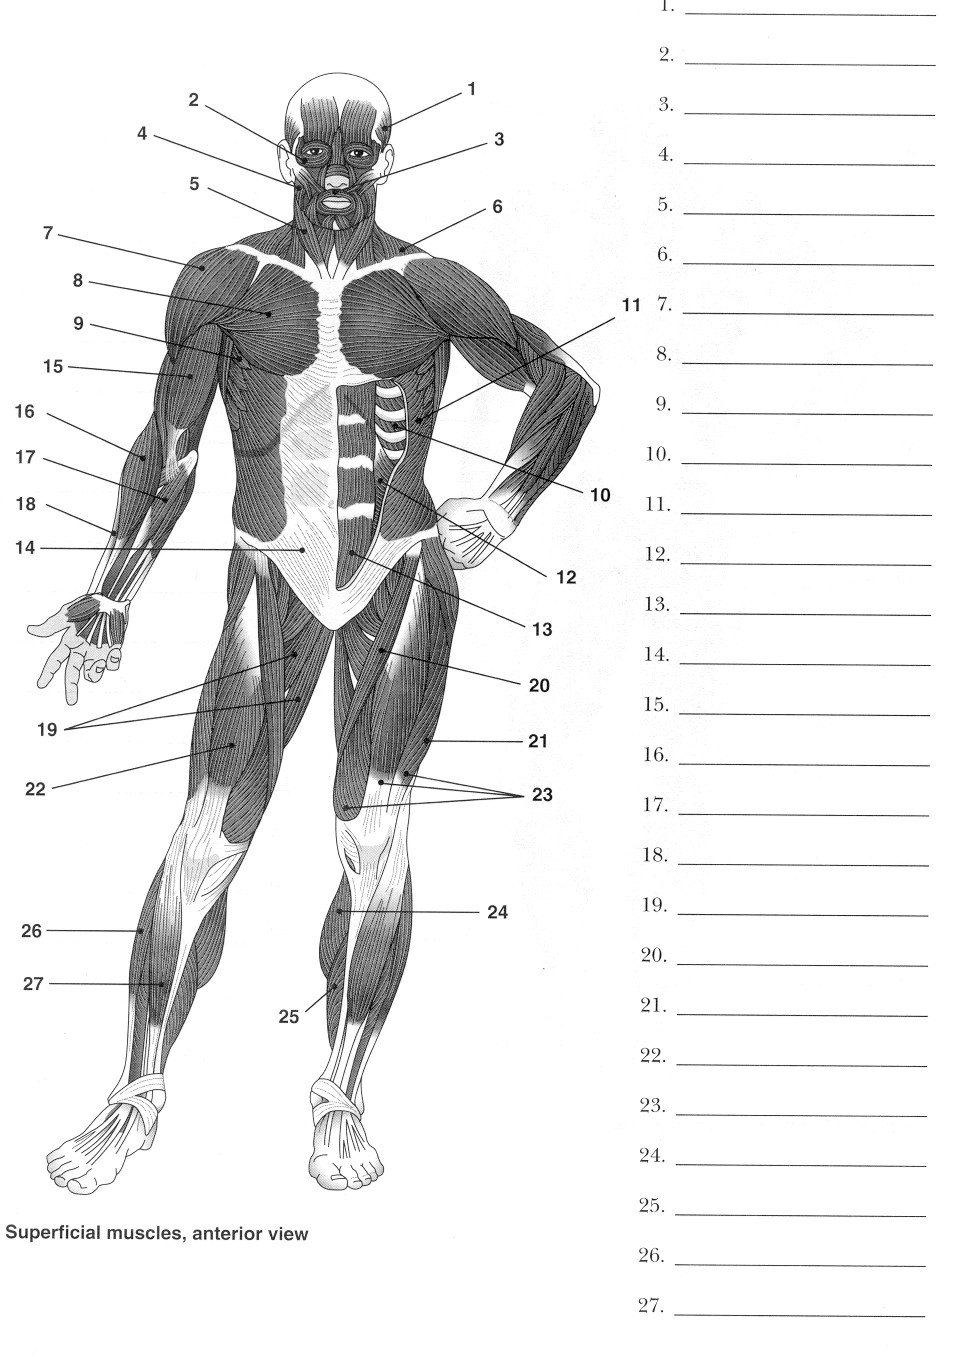 Digestive System Diagram Worksheet Muscle Diagram With Labels Fresh 27 Best Human Digestive System